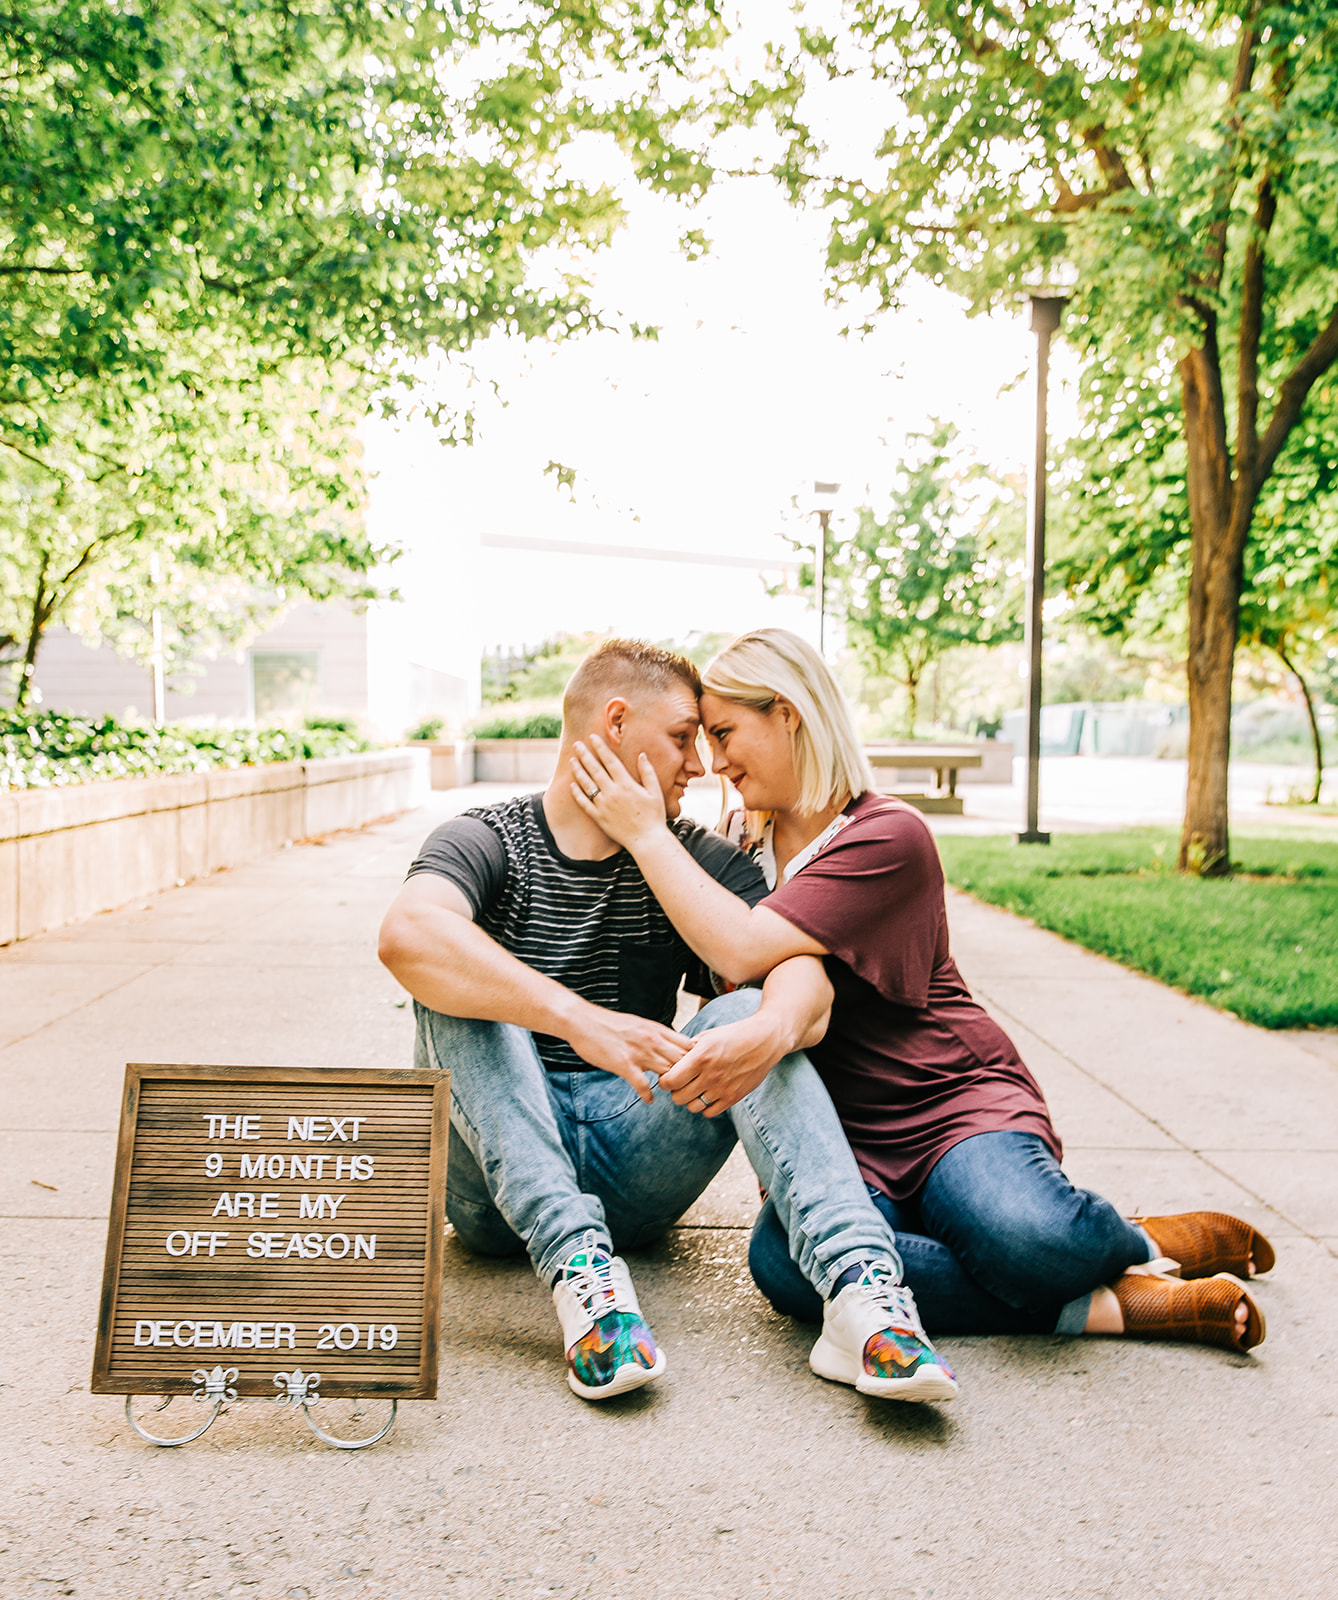 Pregnancy announcement using brown letter board urban setting young parents logan utah birth photographer bella alder photography #bellaalderphoto #newborns #newbornpics #newbornphotographer #maternityphotos #pregnancyannouncement #genderreveal #birthannouncement #birthstoryphotographer